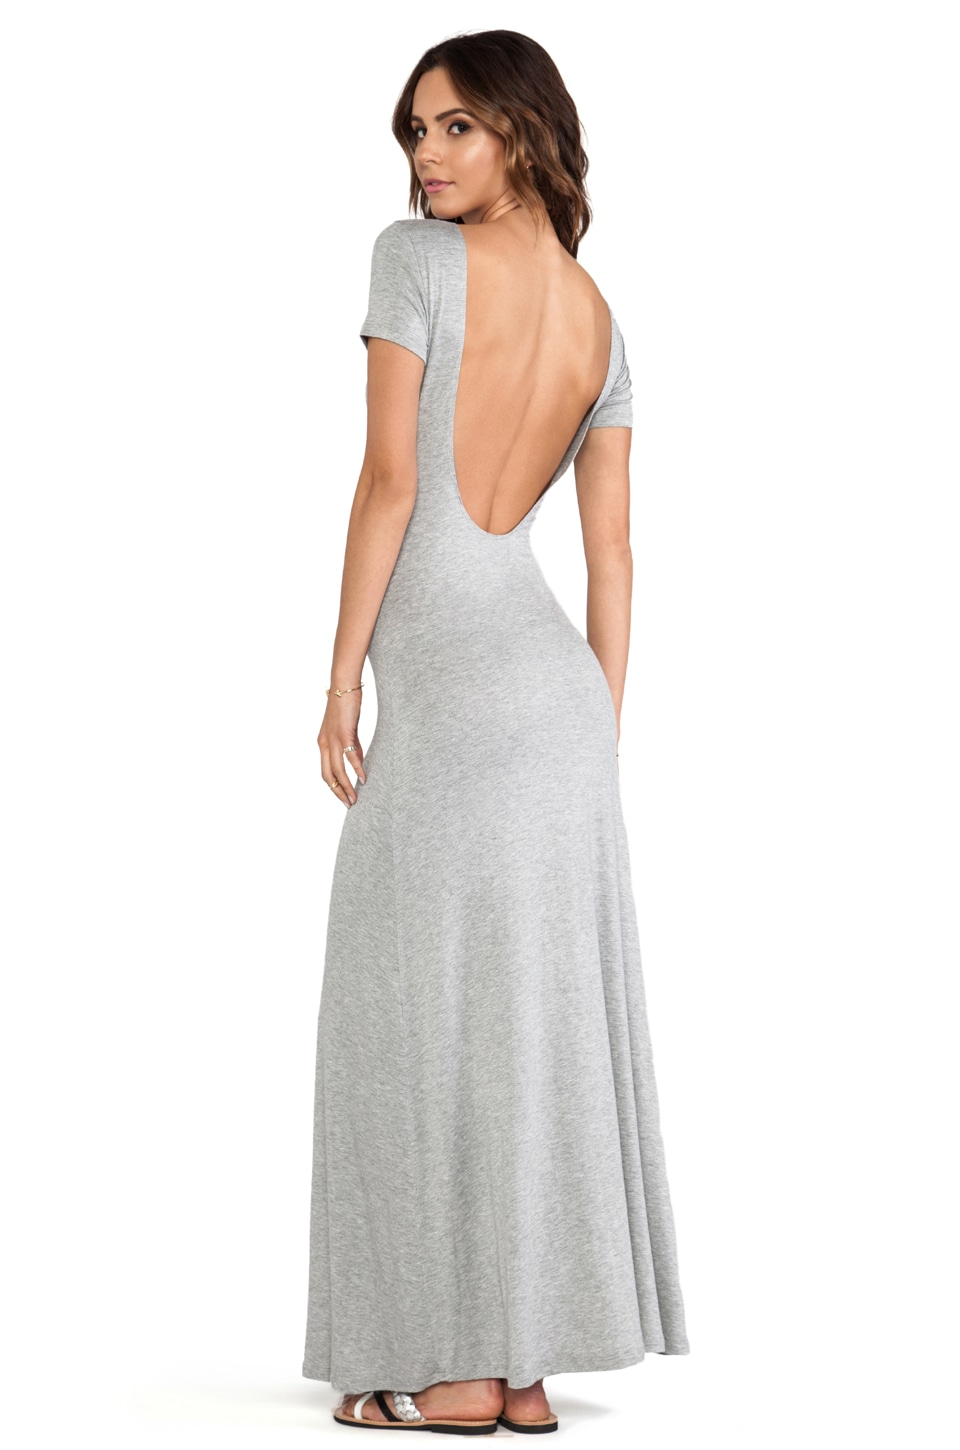 Lovers + Friends Vanity Fair Dress in Heather Grey